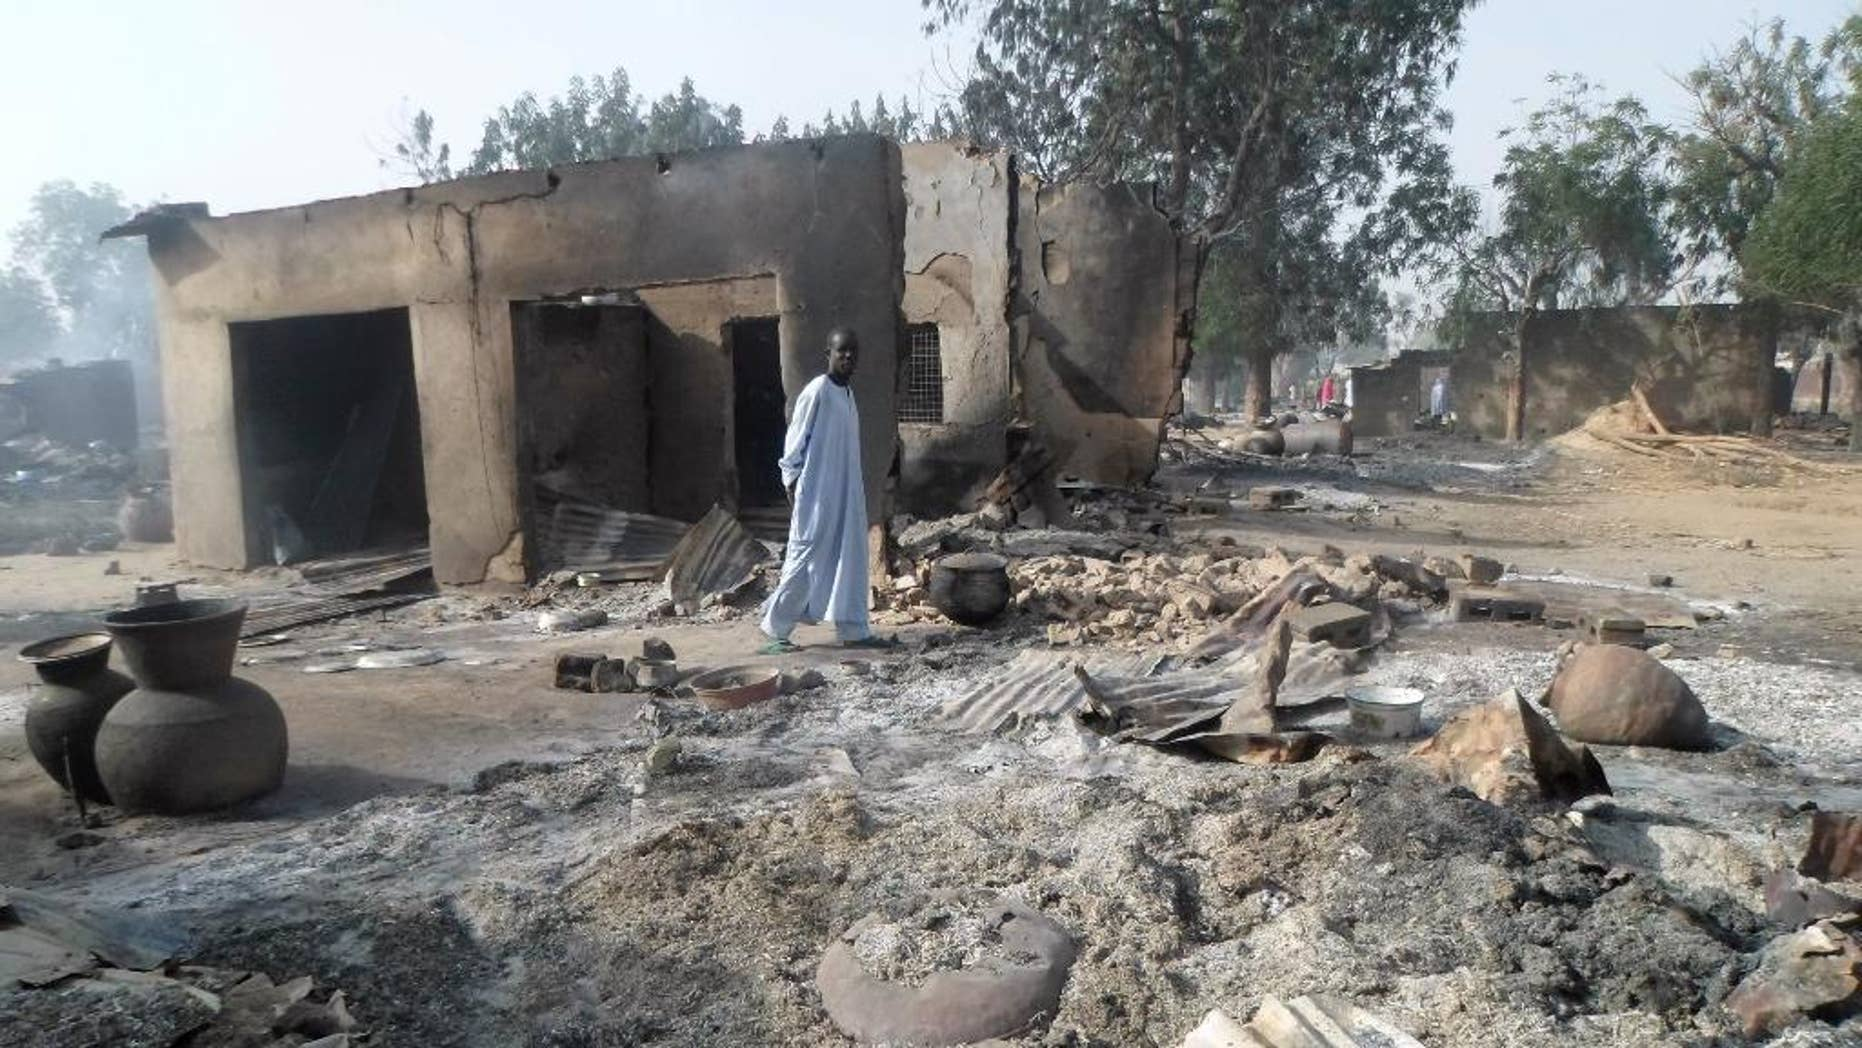 """FILE - In this Sunday Jan. 31, 2016 file photo, a man walks past burnt out houses following an attack by Boko Haram in Dalori village near Maiduguri, Nigeria. Abubakar Shekau says he still leads Boko Haram, exposing the biggest rift yet among Nigeria's Islamic insurgents and possibly paving the way for a break from the Islamic State group. The Islamic State on Wednesday, Aug. 3, 2016 announced that Abu Musab al-Barnawi is the new leader of its so-called West Africa province. But an audio speech Thursday purporting to be from Shekau criticizes al-Barnawi as """"an infidel."""" (AP Photo/Jossy Ola, File)"""